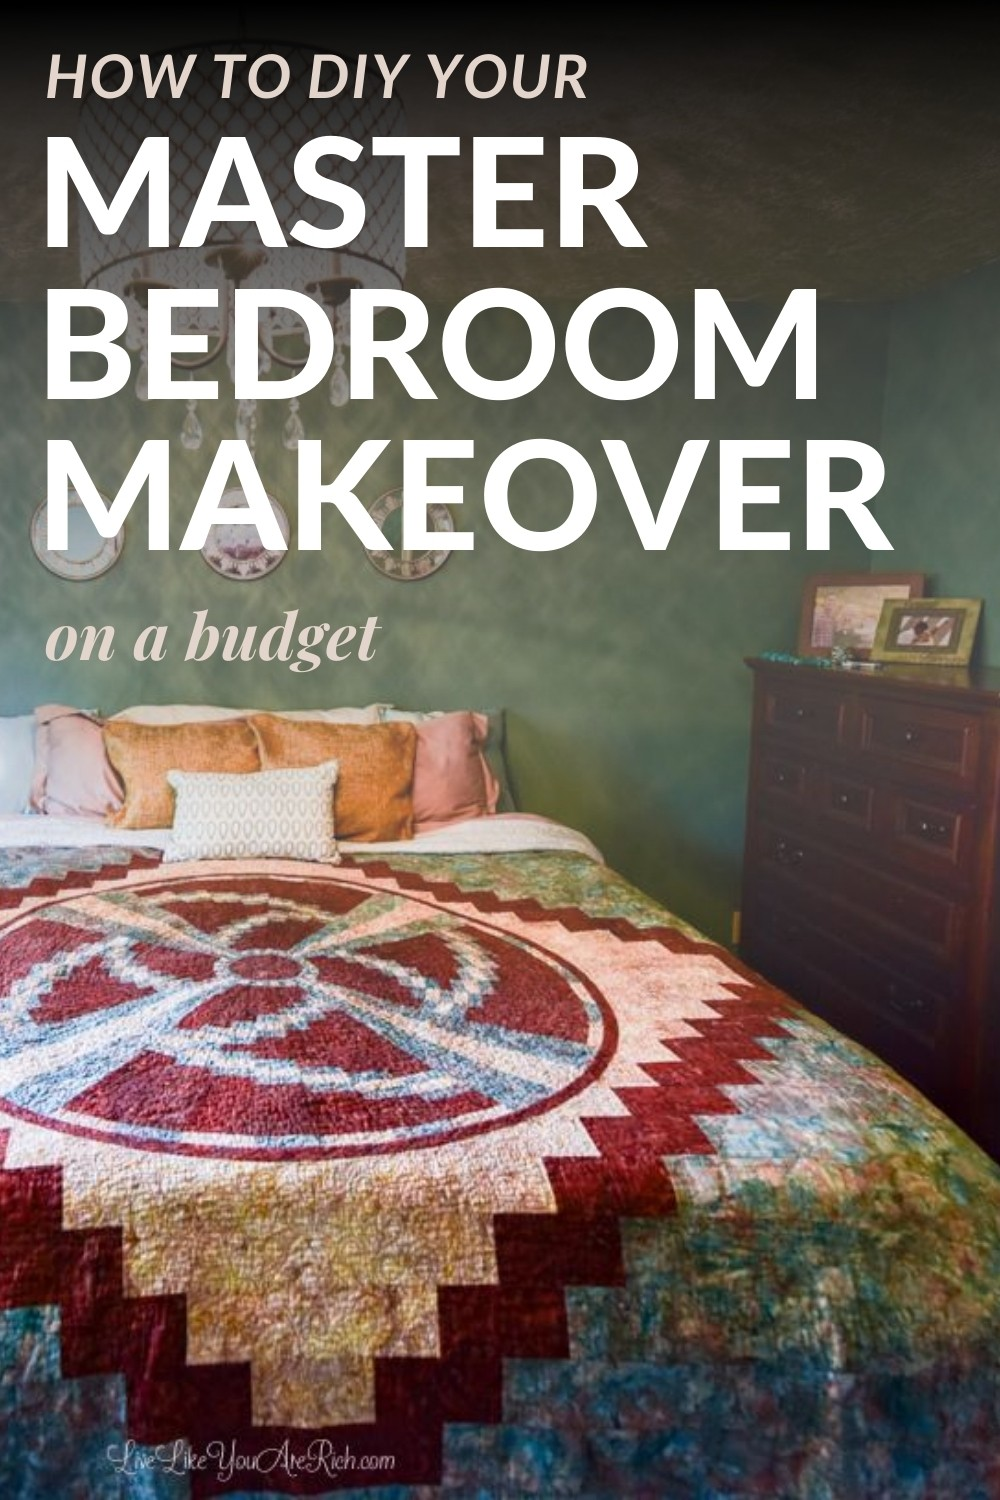 You don't have to spend a fortune renovating and decorating a master bedroom. I'm sharing how I renovate, furnished and decorated my master bedroom on a budget